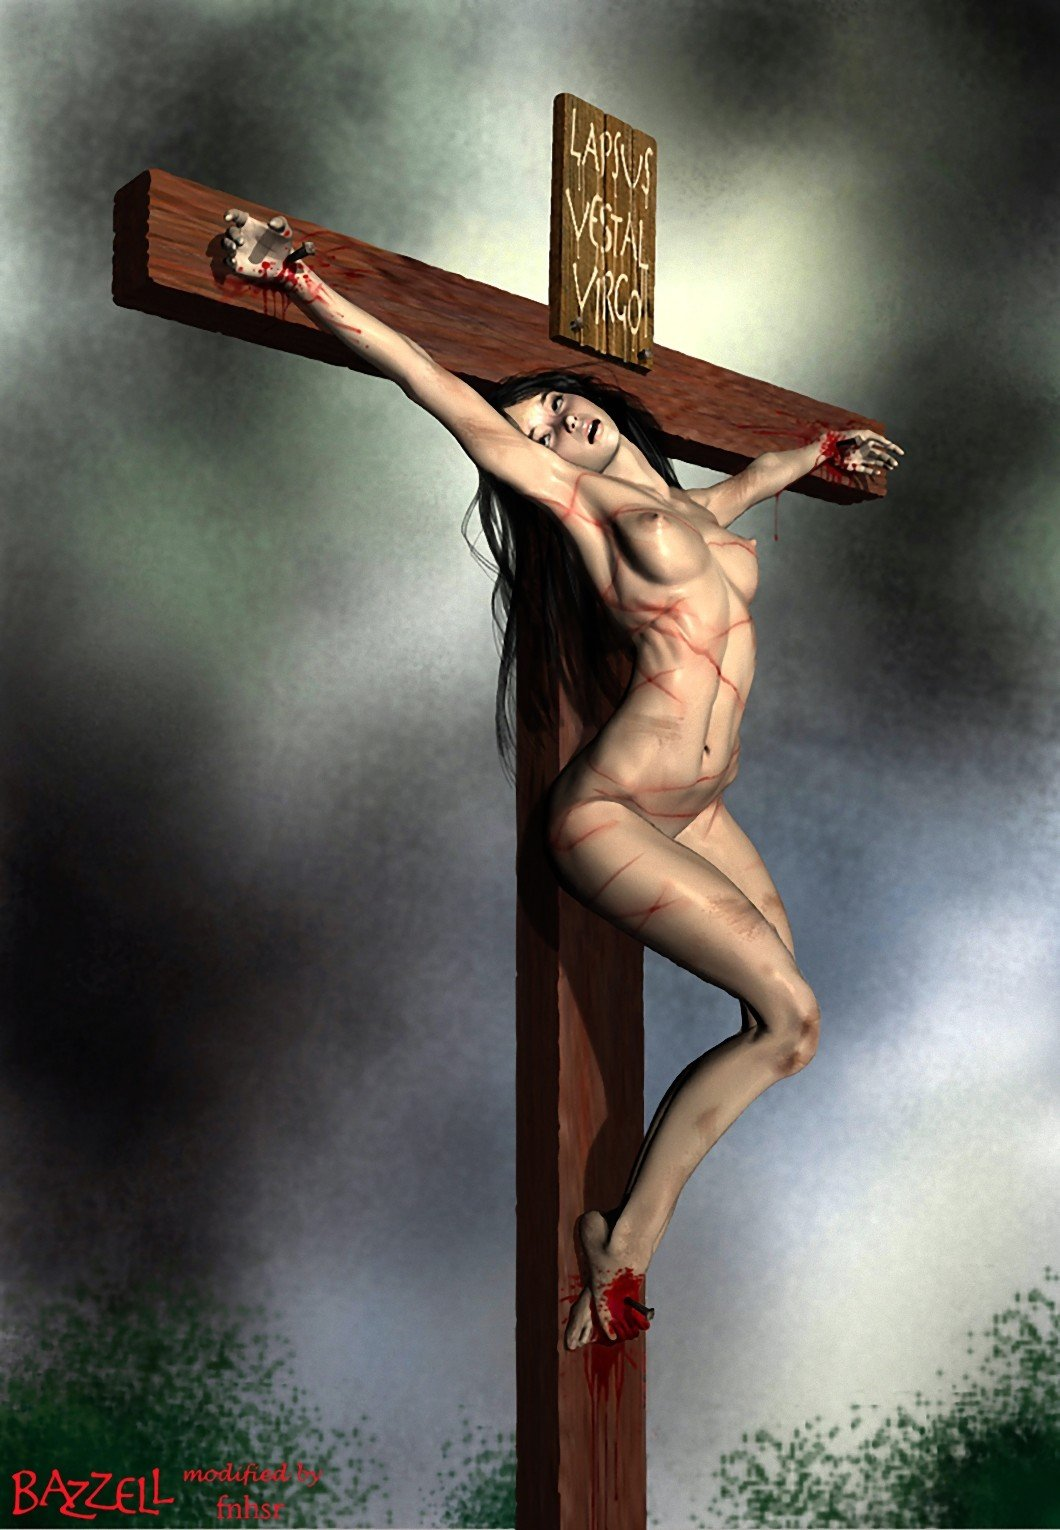 movies-of-naked-women-crucifixion-head-and